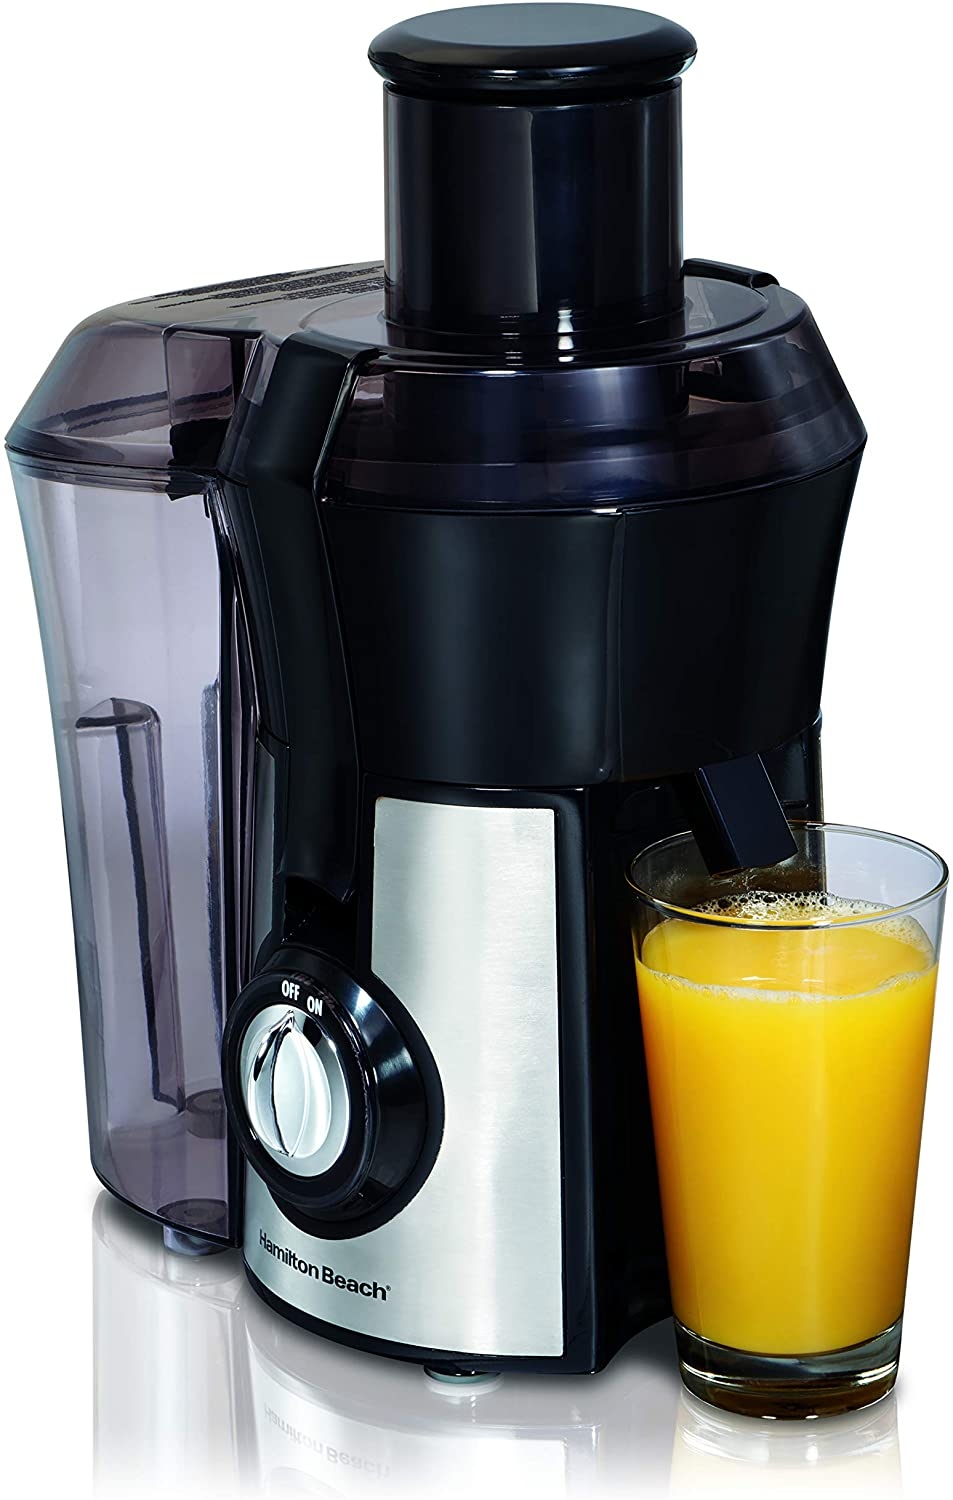 Best Hamilton Beach Juicers 2021 (Reviews) – Buying Guide 5